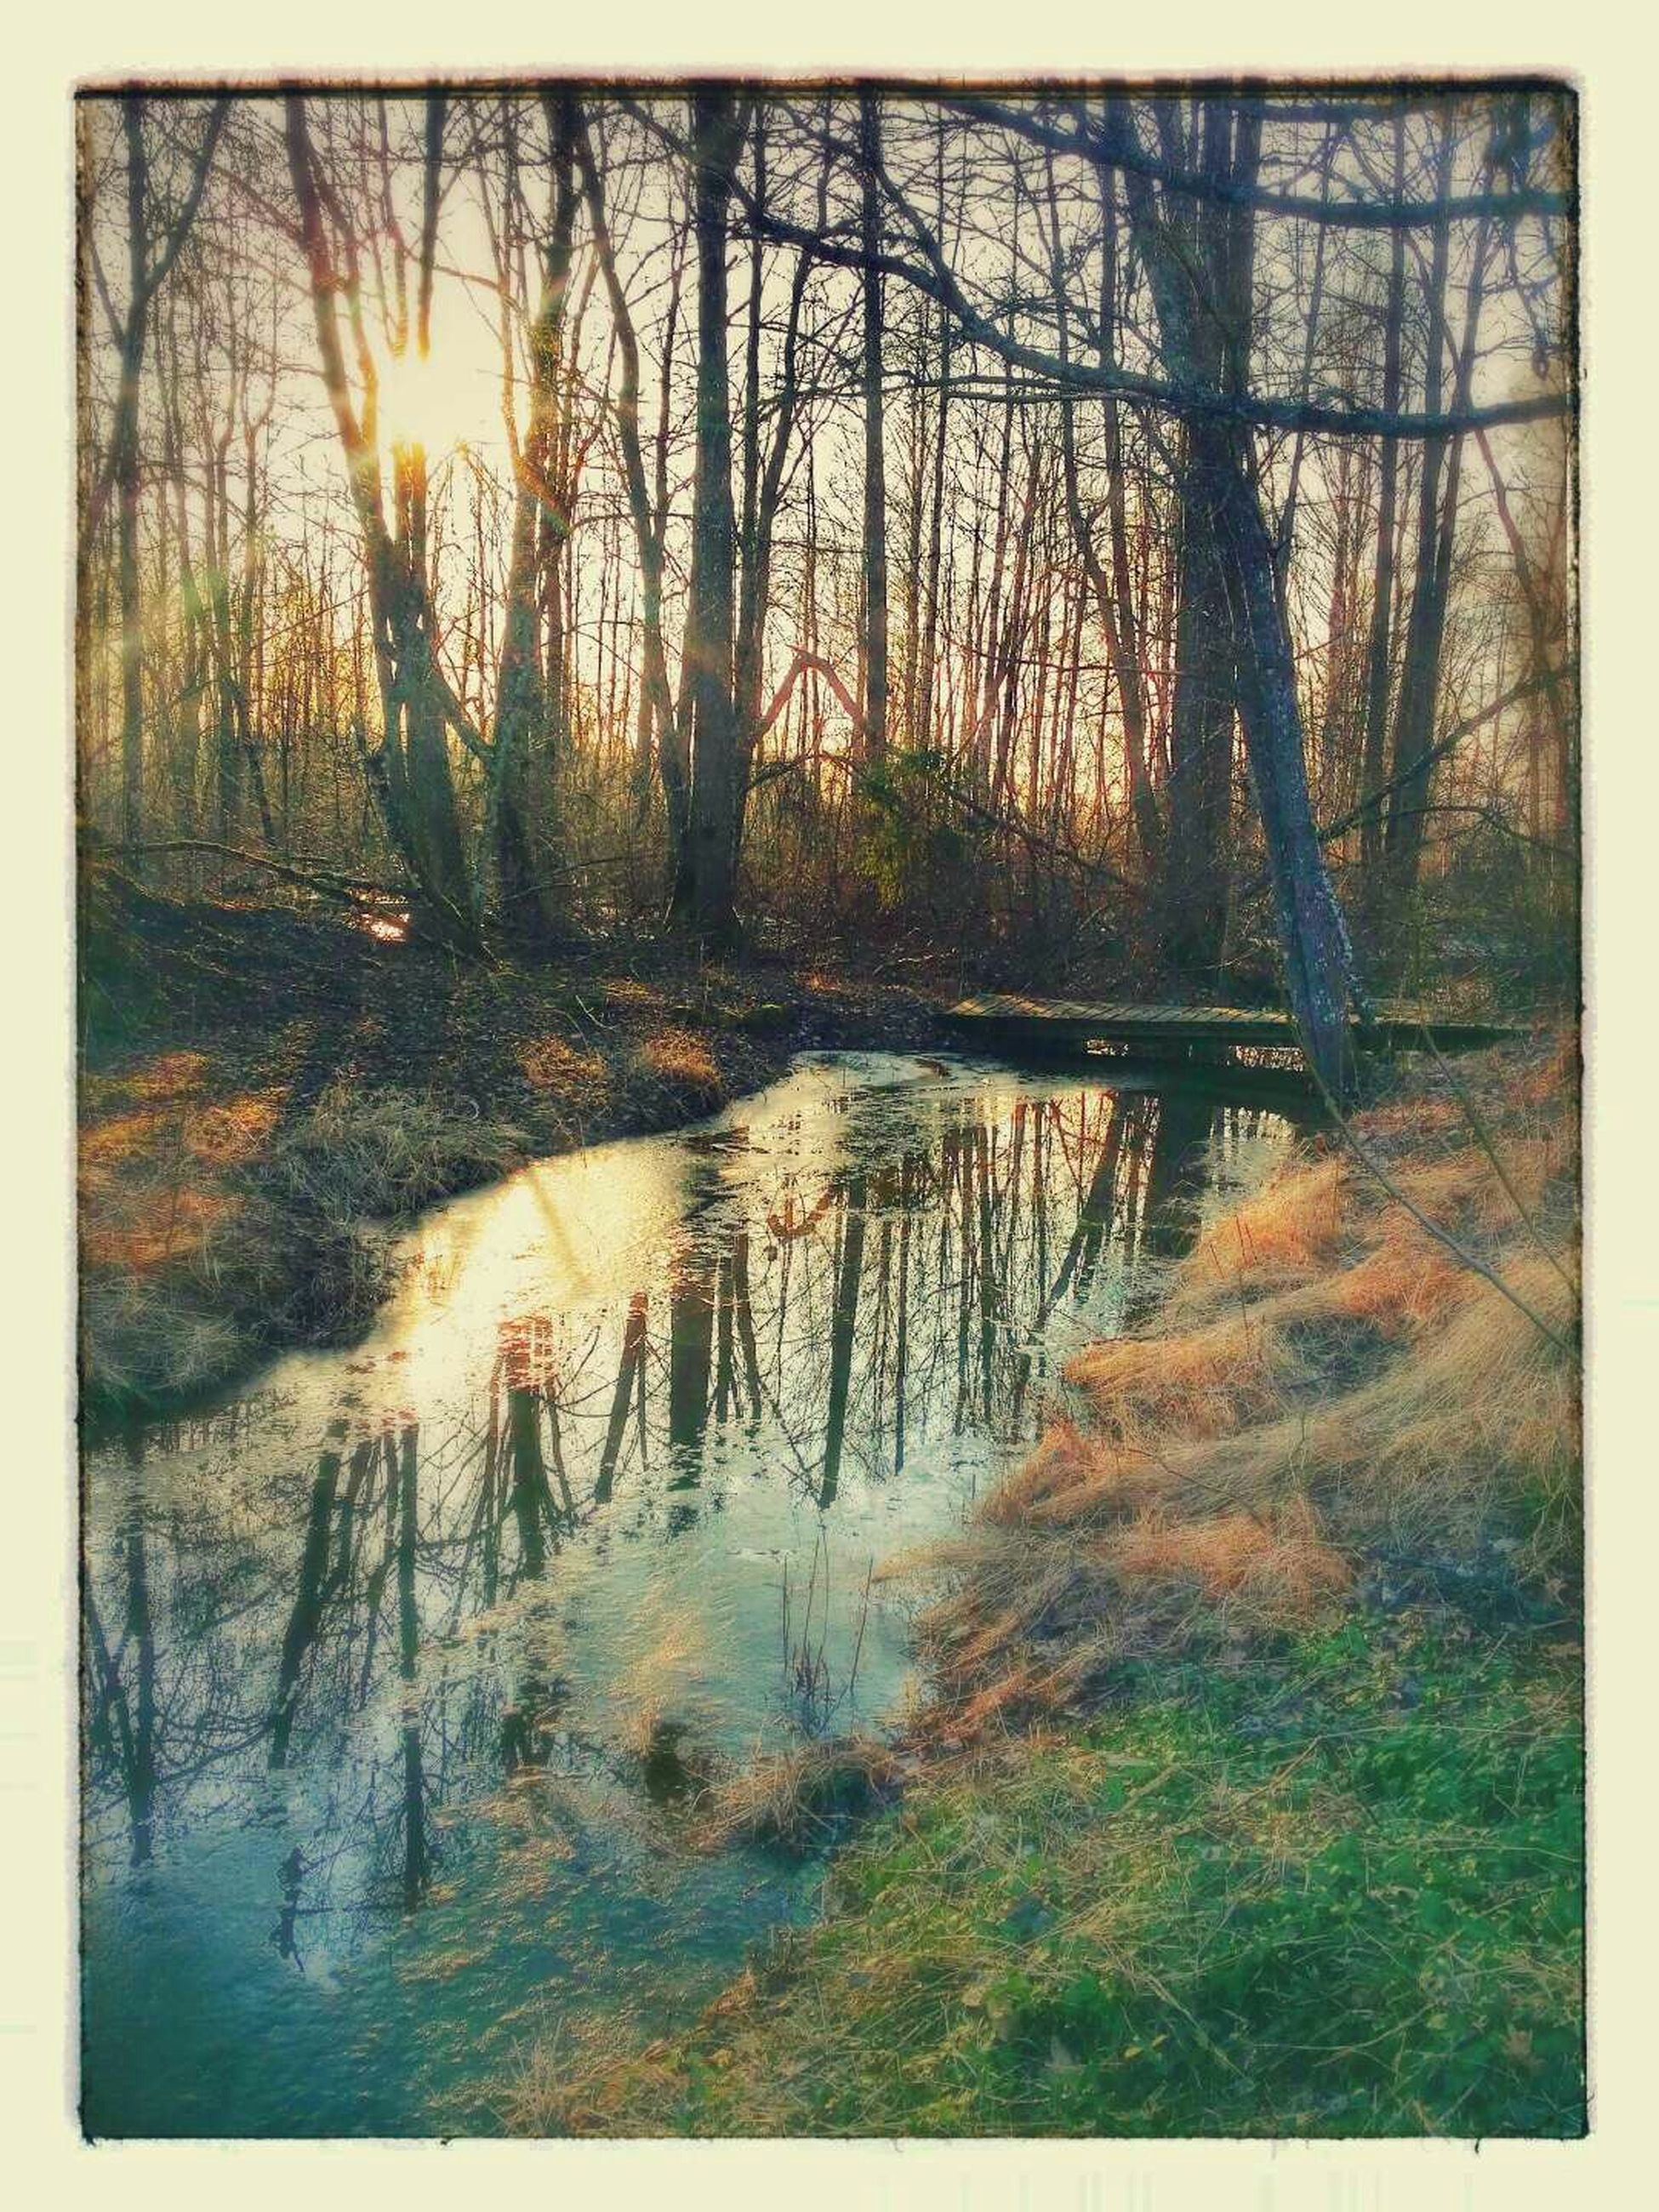 water, sun, tree, transfer print, sunset, tranquility, reflection, tranquil scene, sunlight, auto post production filter, scenics, nature, beauty in nature, river, bare tree, sunbeam, lake, forest, stream, branch